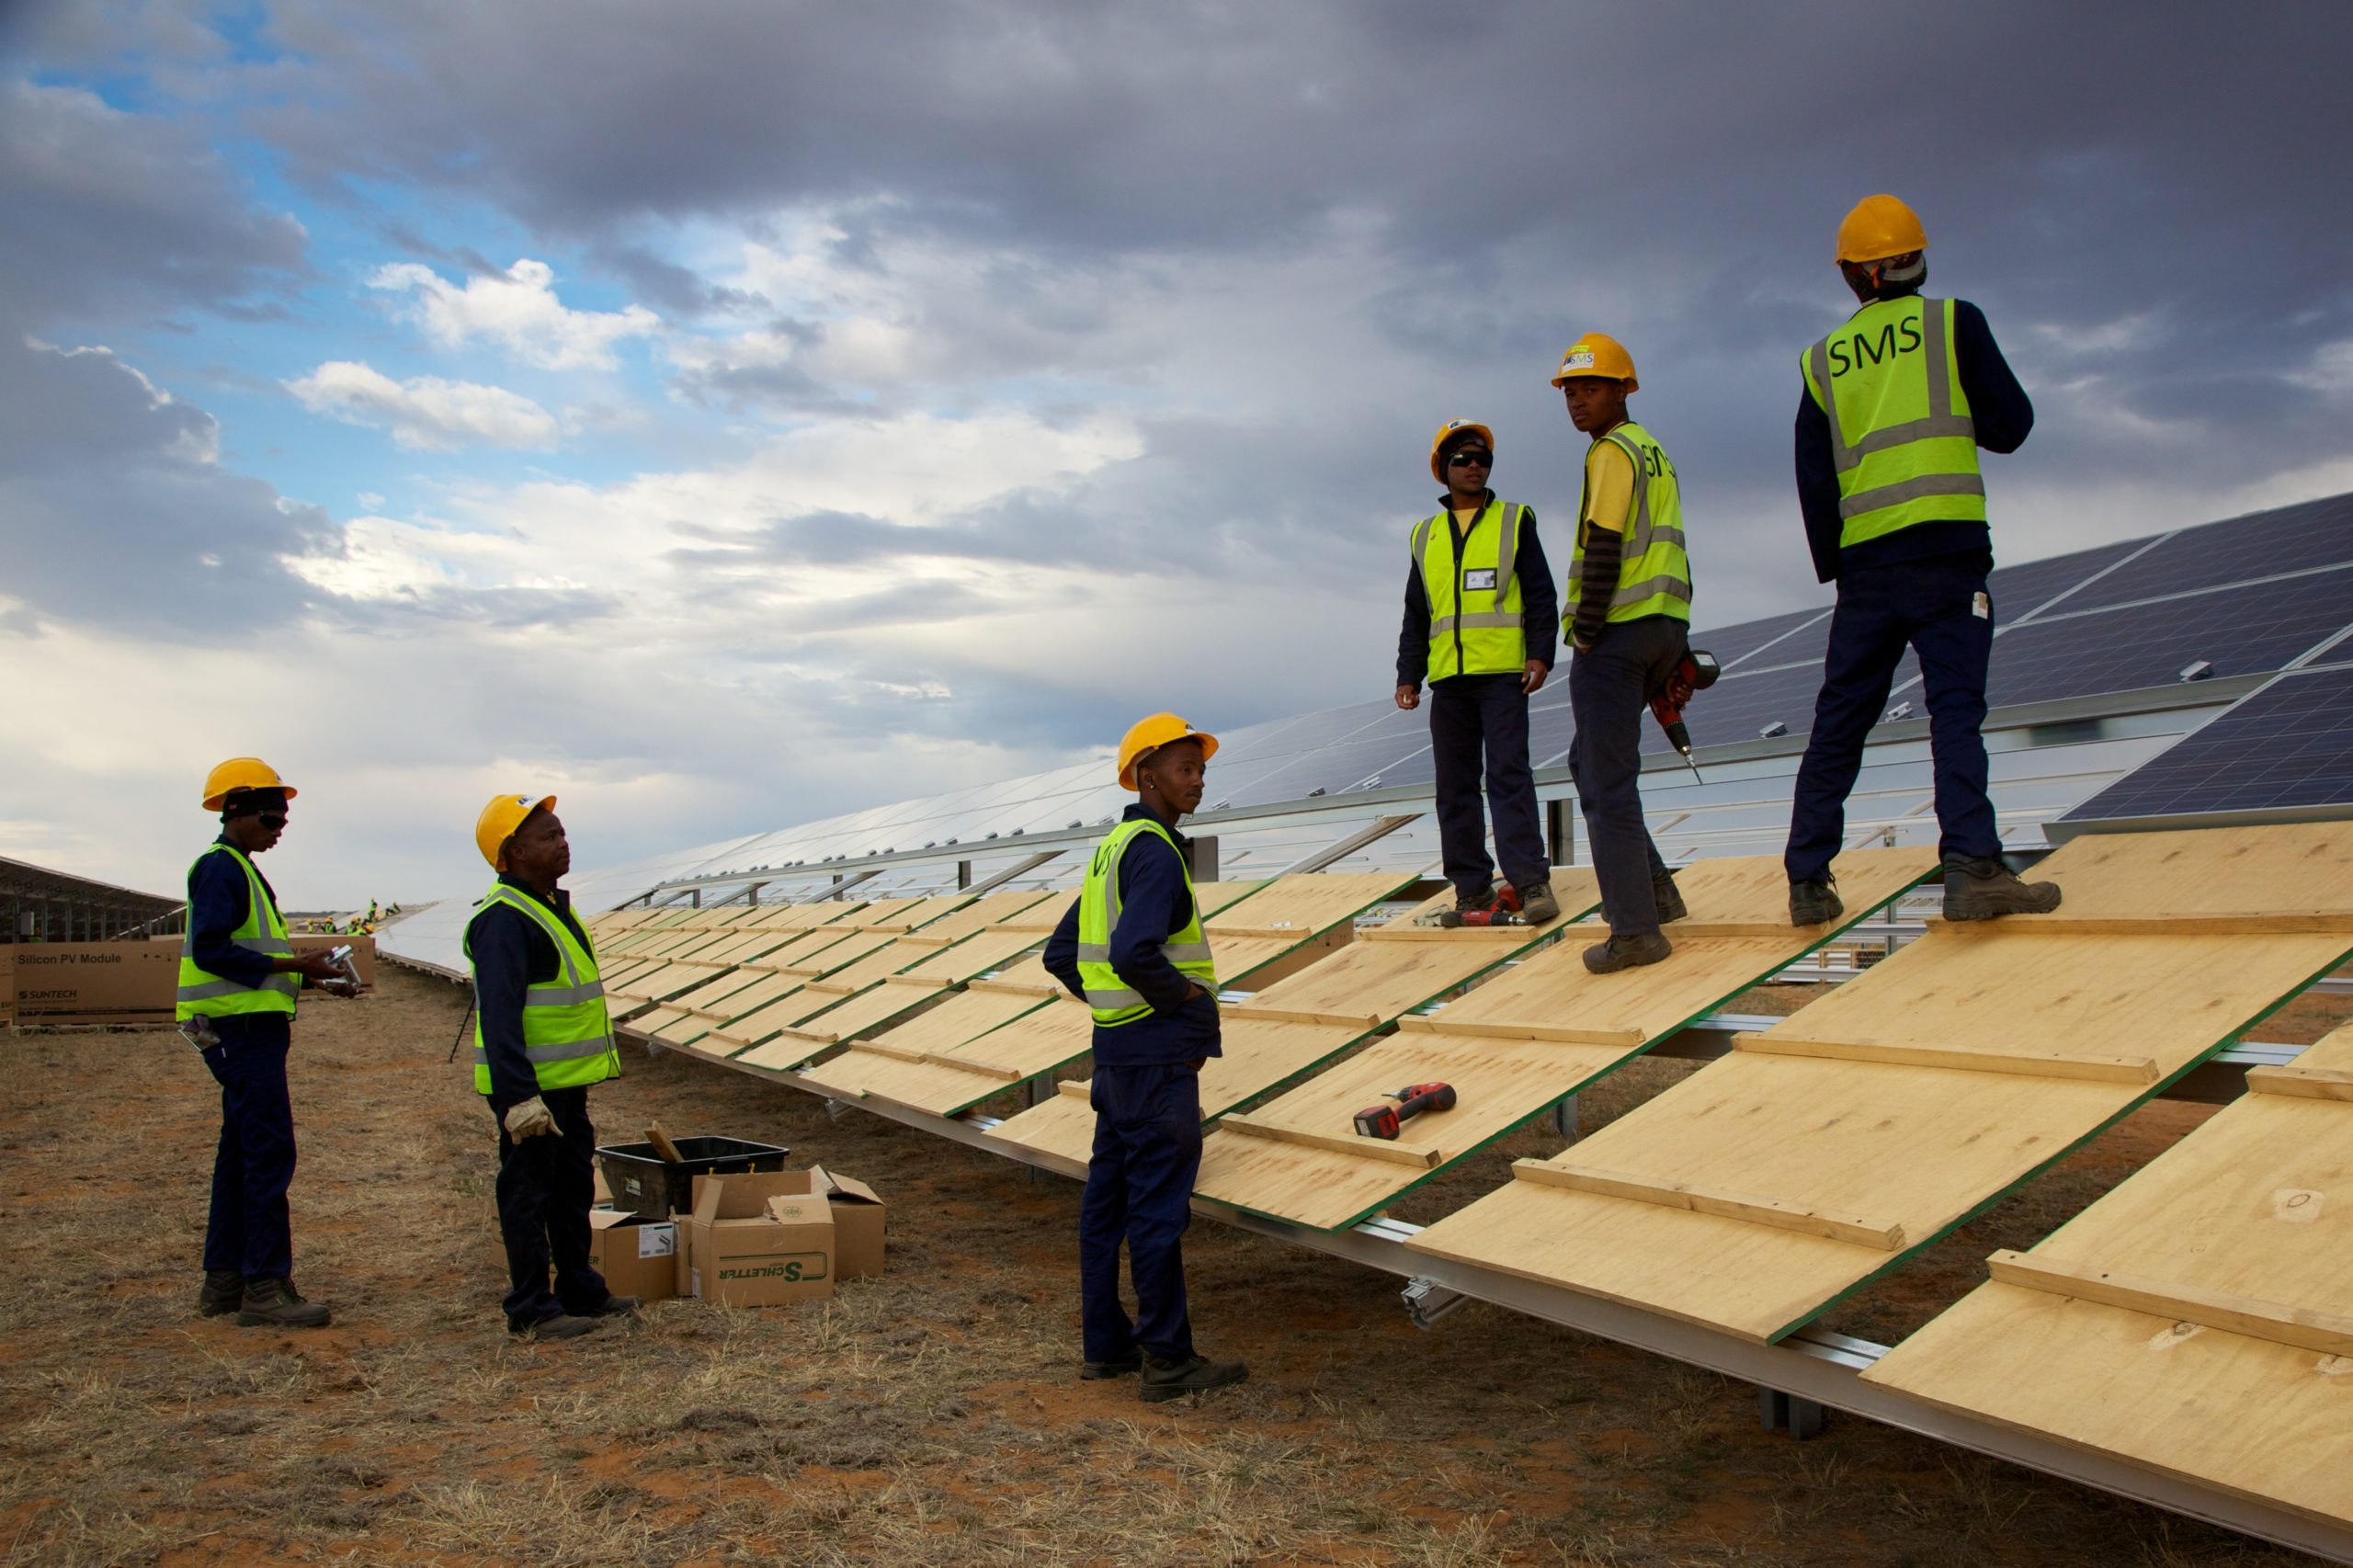 The Droogfontein solar project in South Africa. Image: Luke Younge.